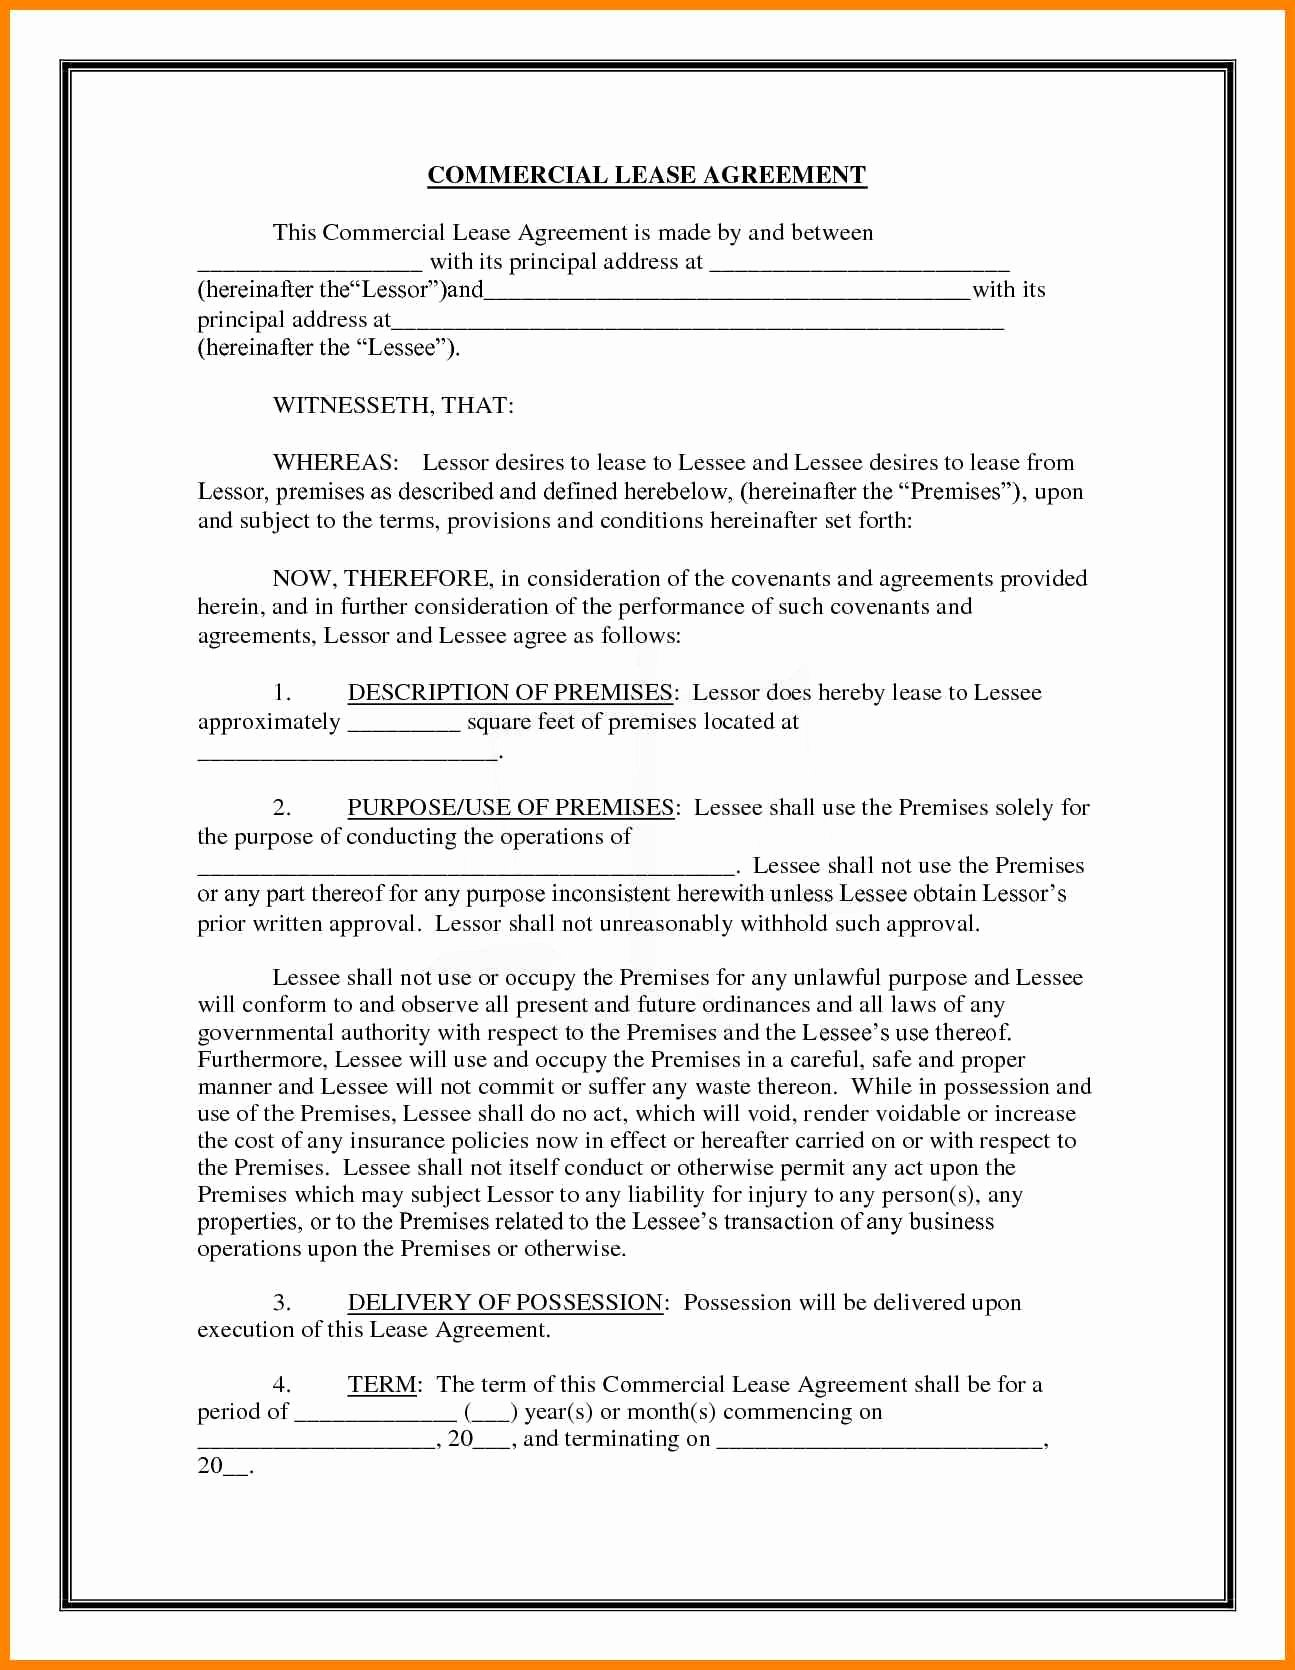 Mercial Lease Agreement Template Free